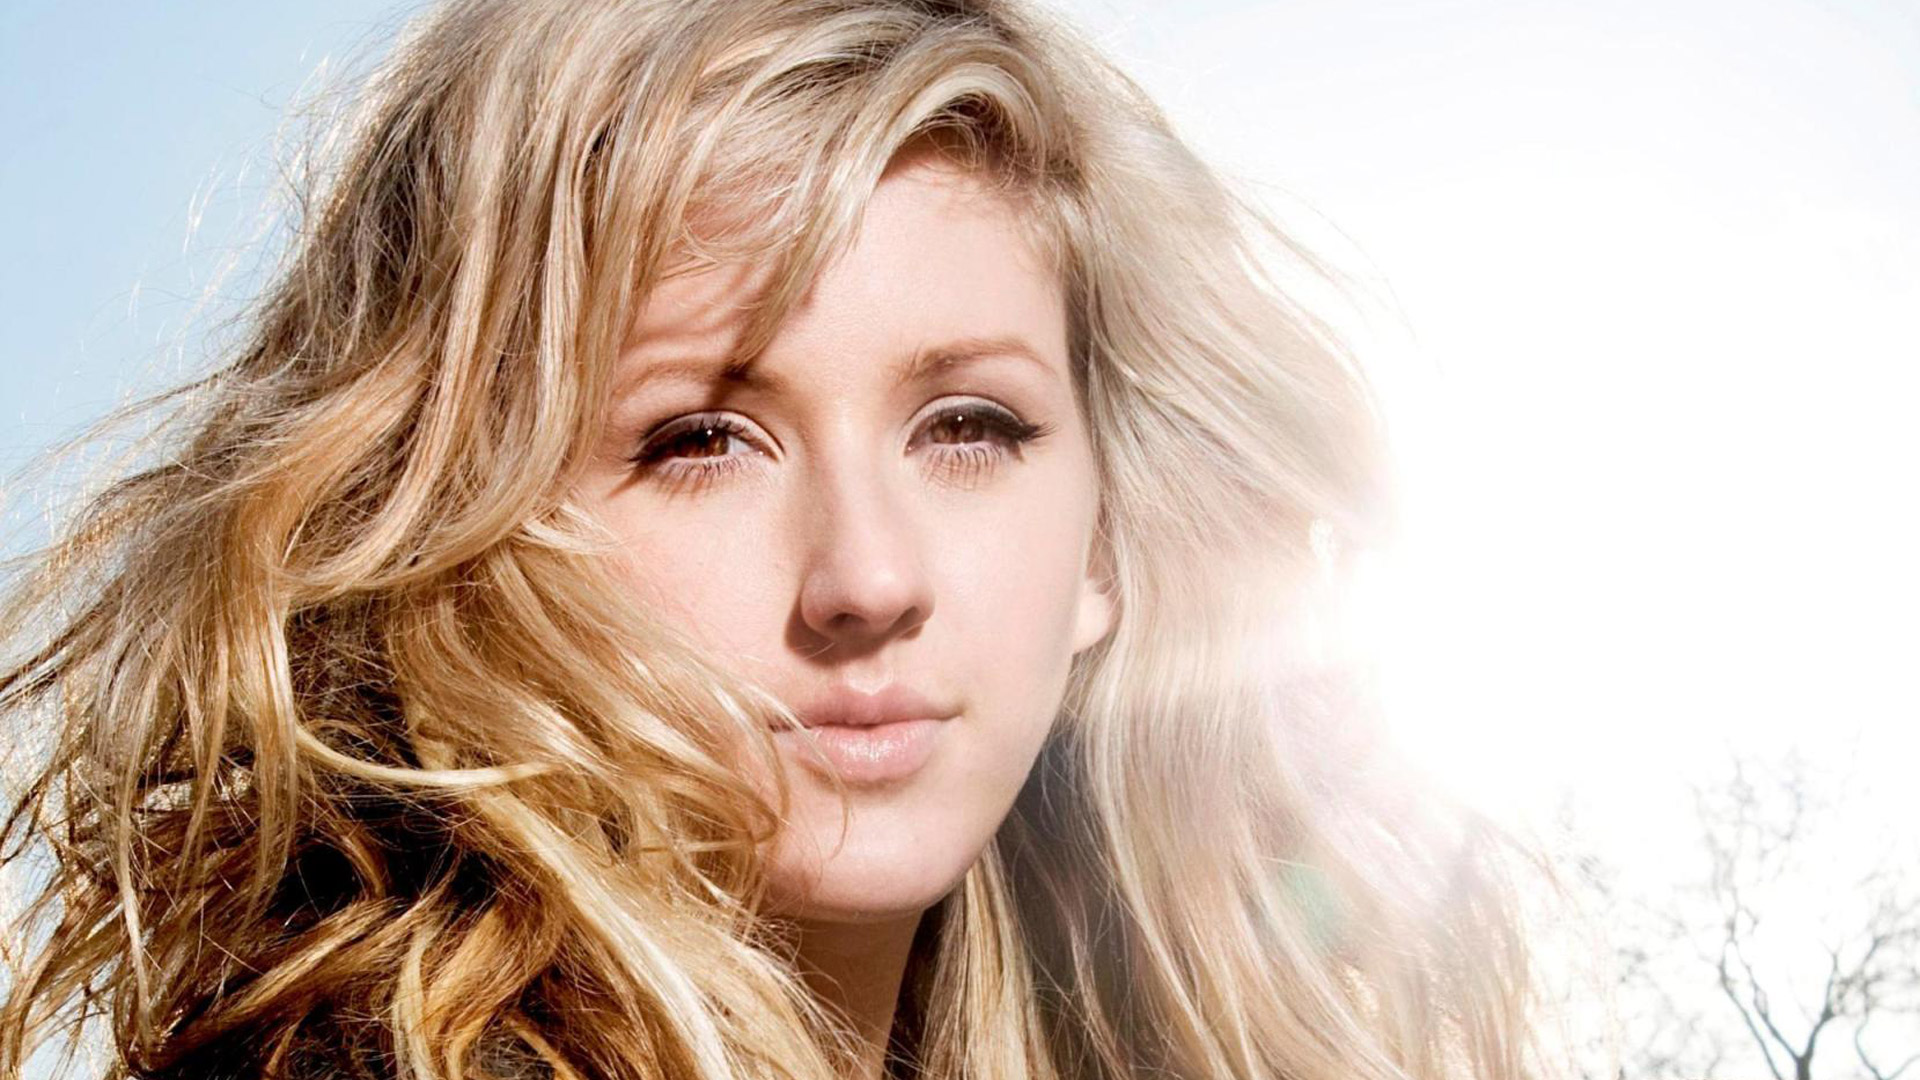 Beautiful Ellie Goulding Wallpaper